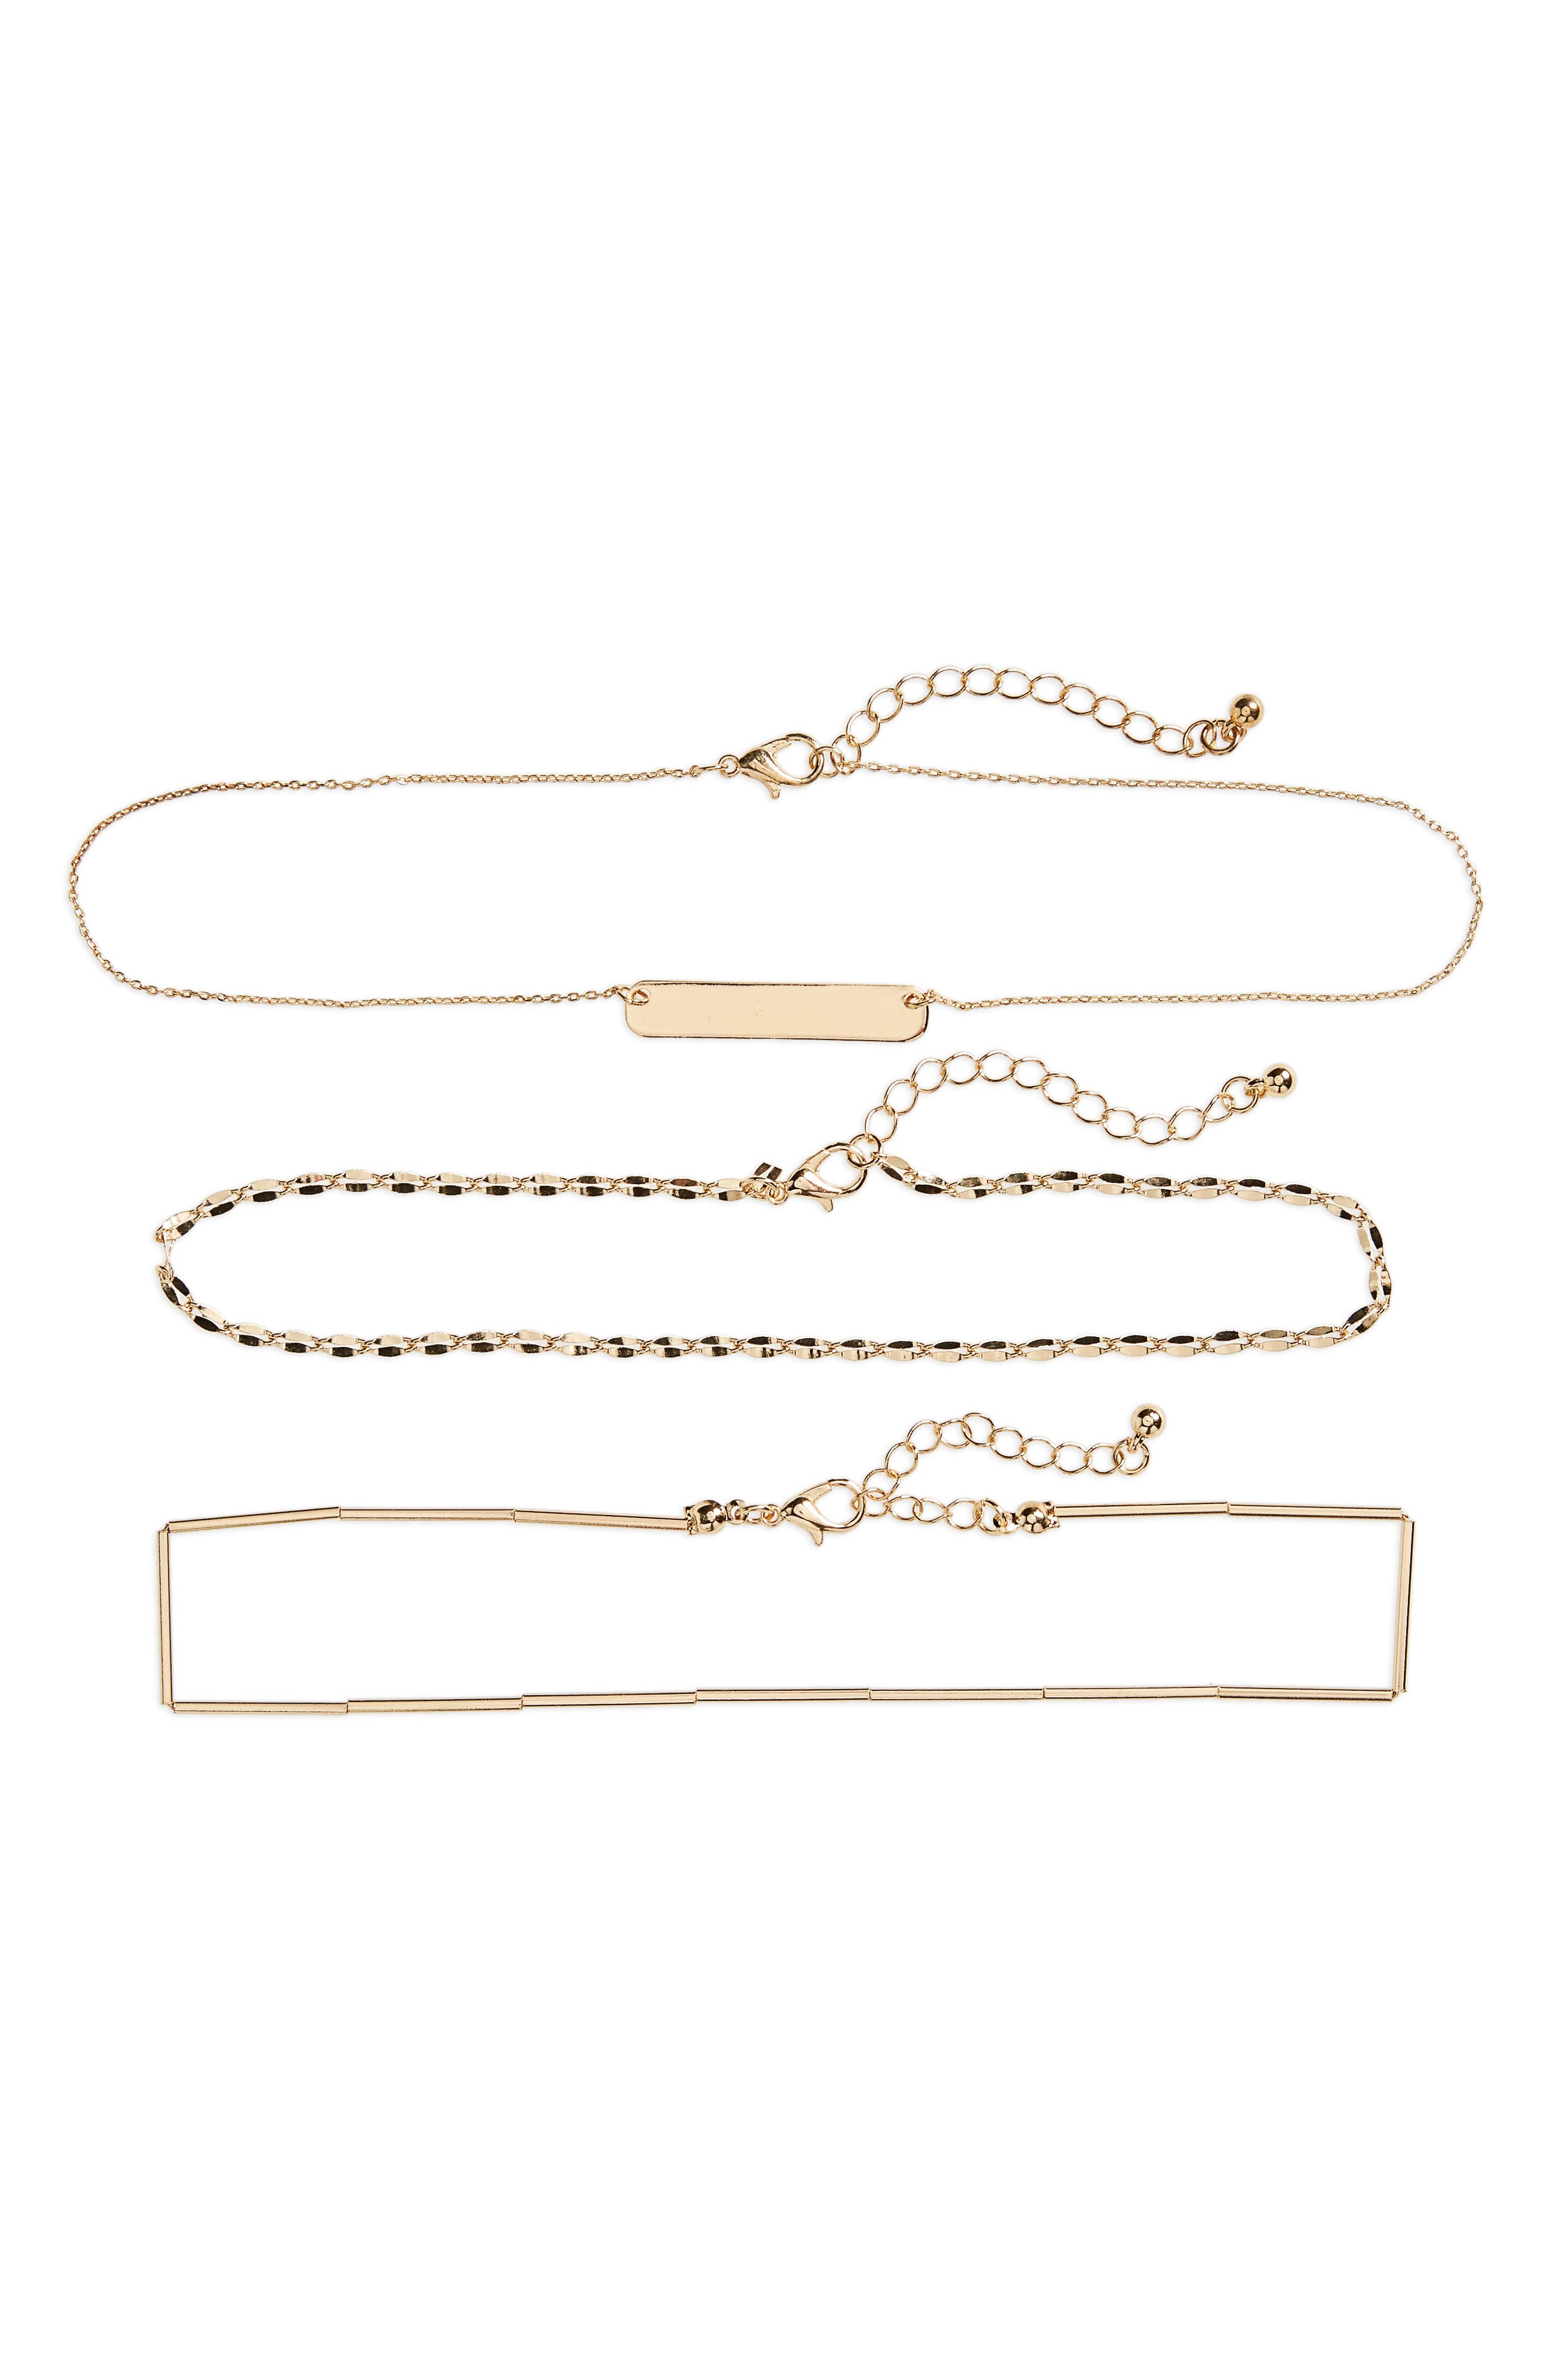 3-Pack Link Necklaces,                             Main thumbnail 1, color,                             710